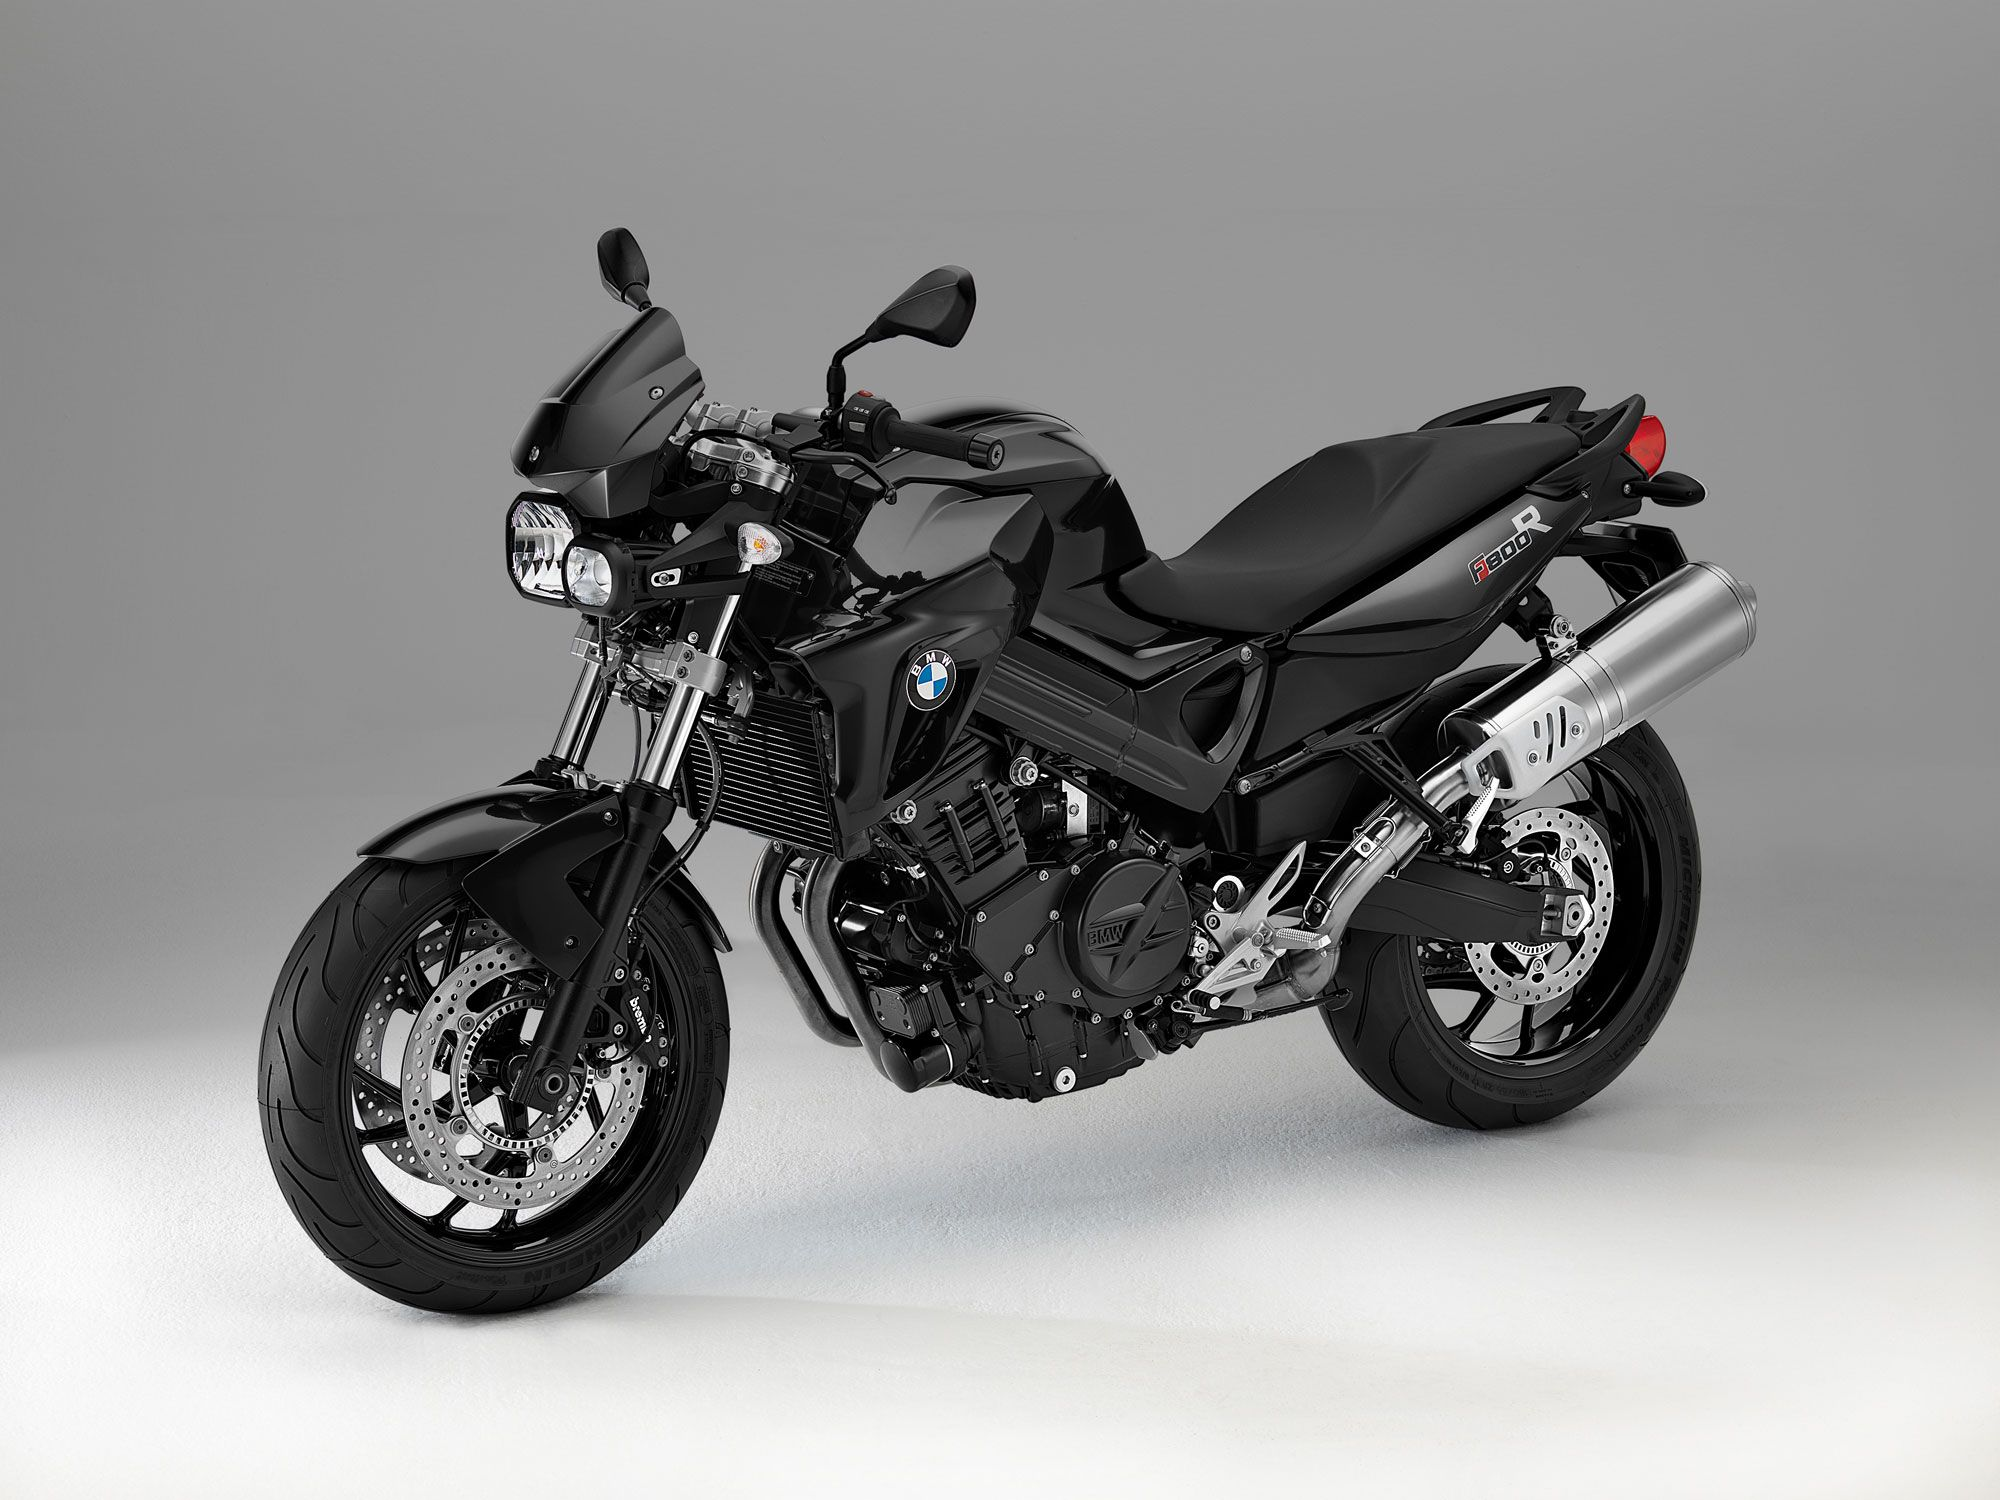 Bmw F800r Black Bmw Motorcycle Girl Bmw Motorcycle Motorcycle